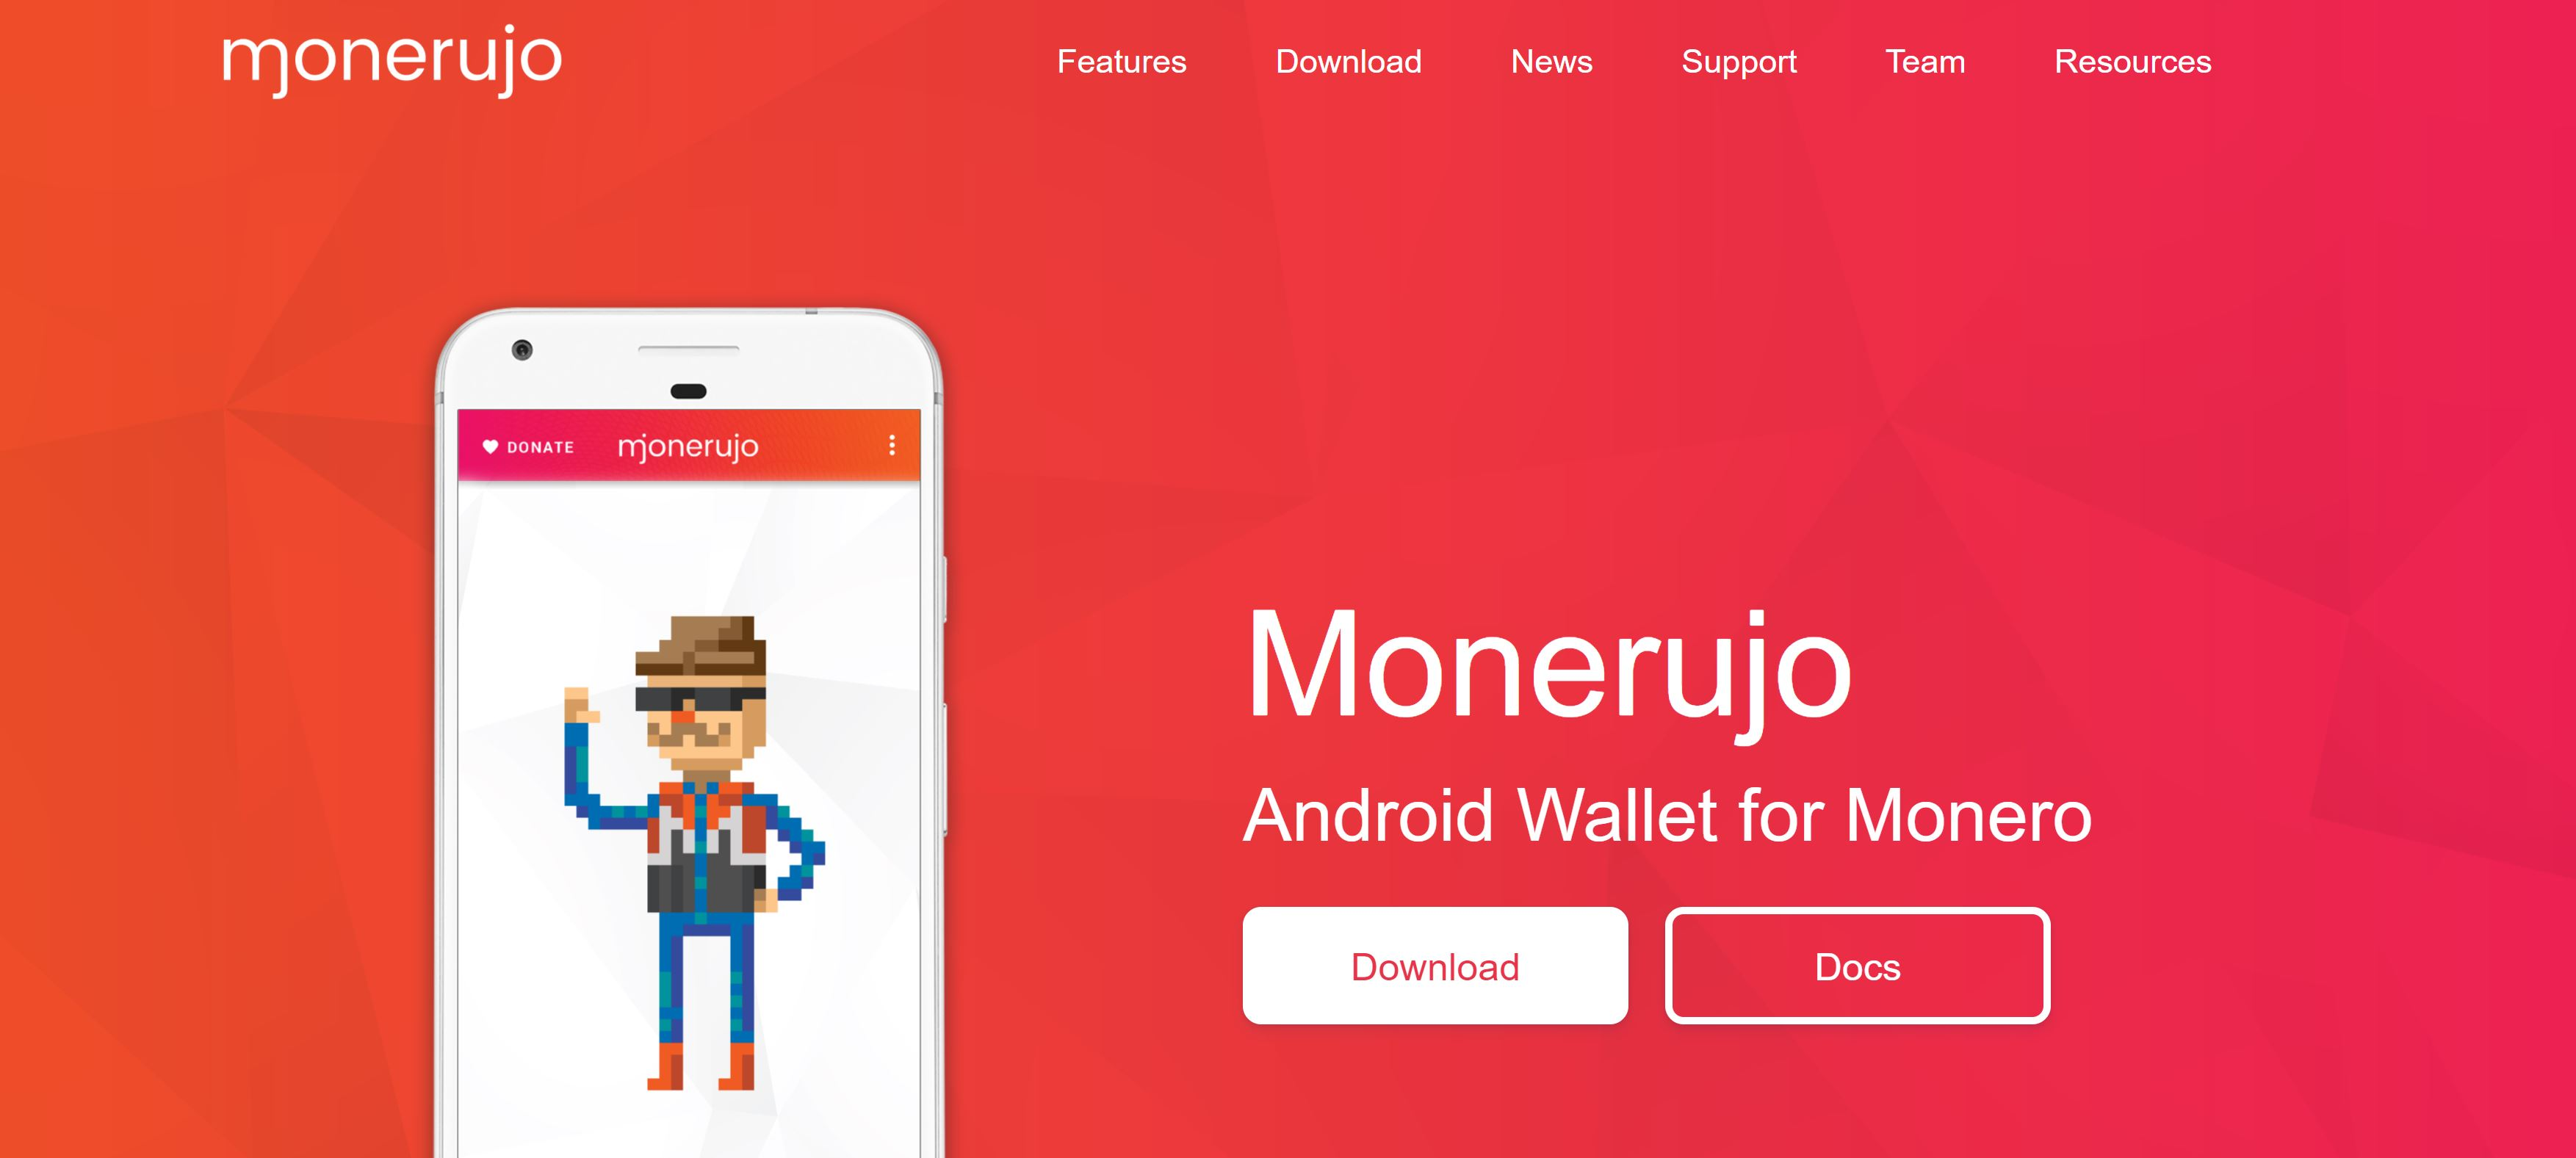 Sito Web di Monerujo Monero Wallet